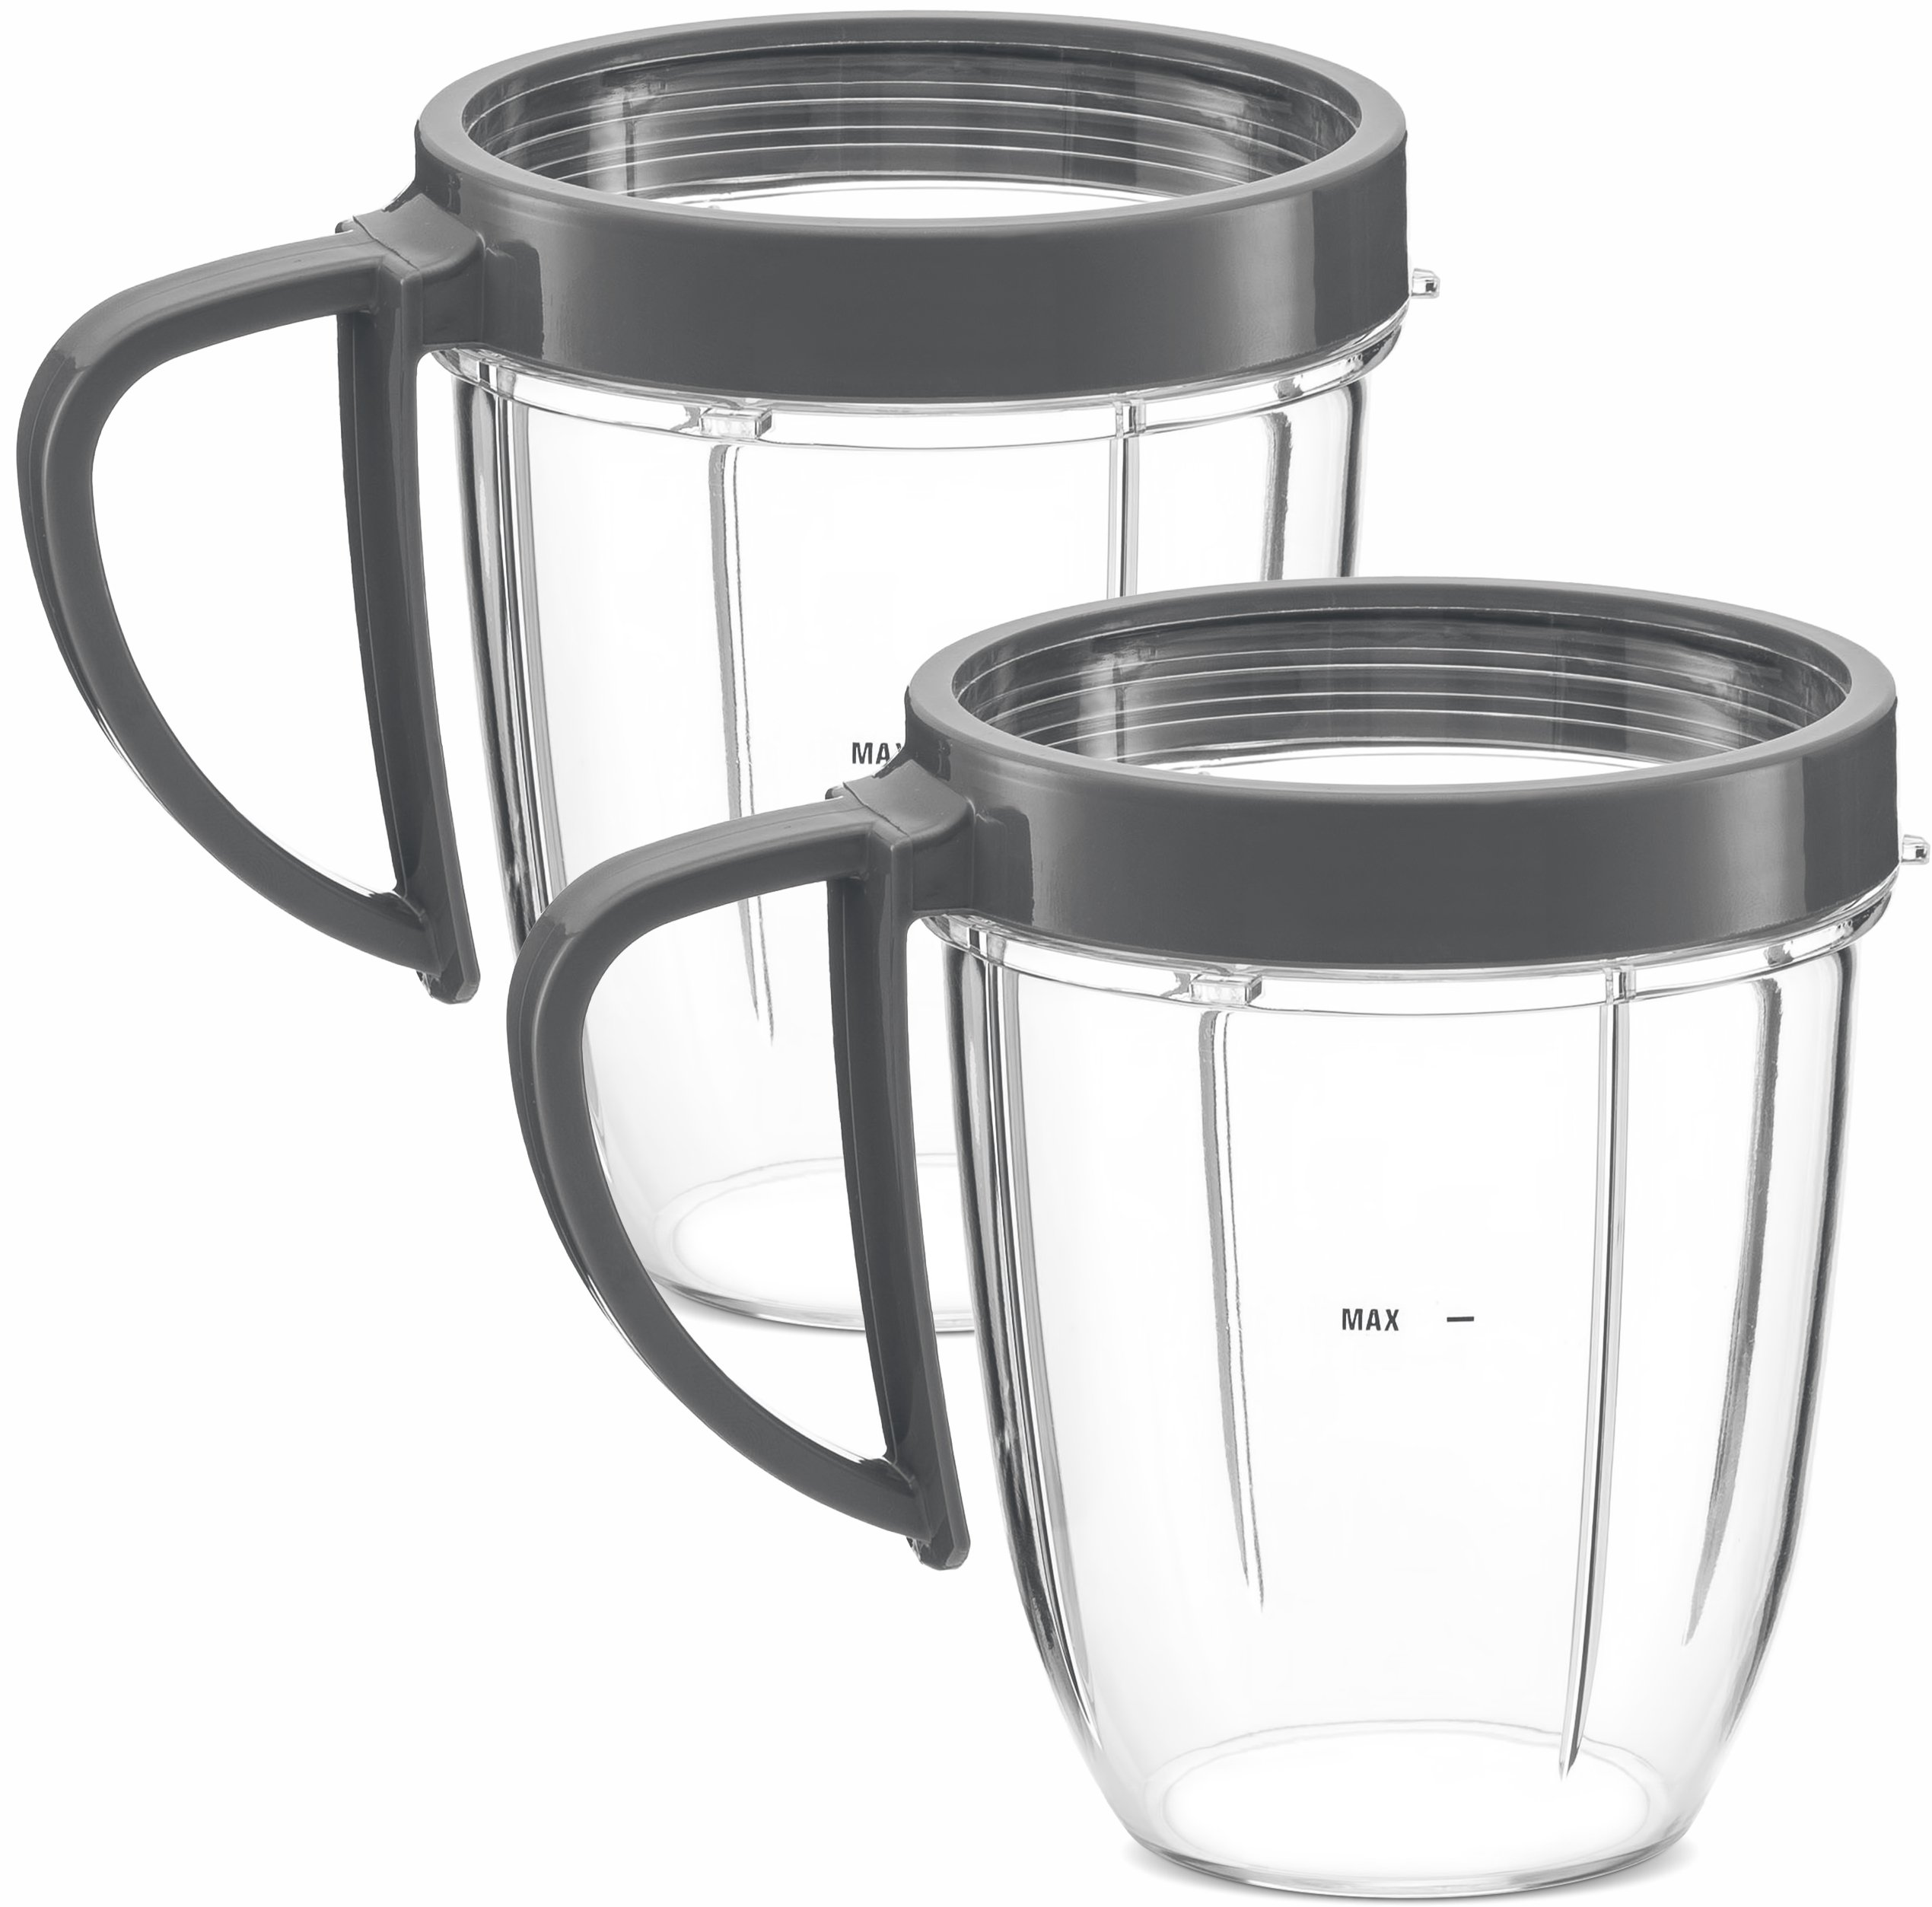 NUTRiBULLET 18-Ounce Cups with Handel and Screw-Off Lip Ring by NutriGear (Pack of 2) | NutriBullet Replacement Parts & Accessories | Fits NutriBullet 600w and Pro 900w Blender